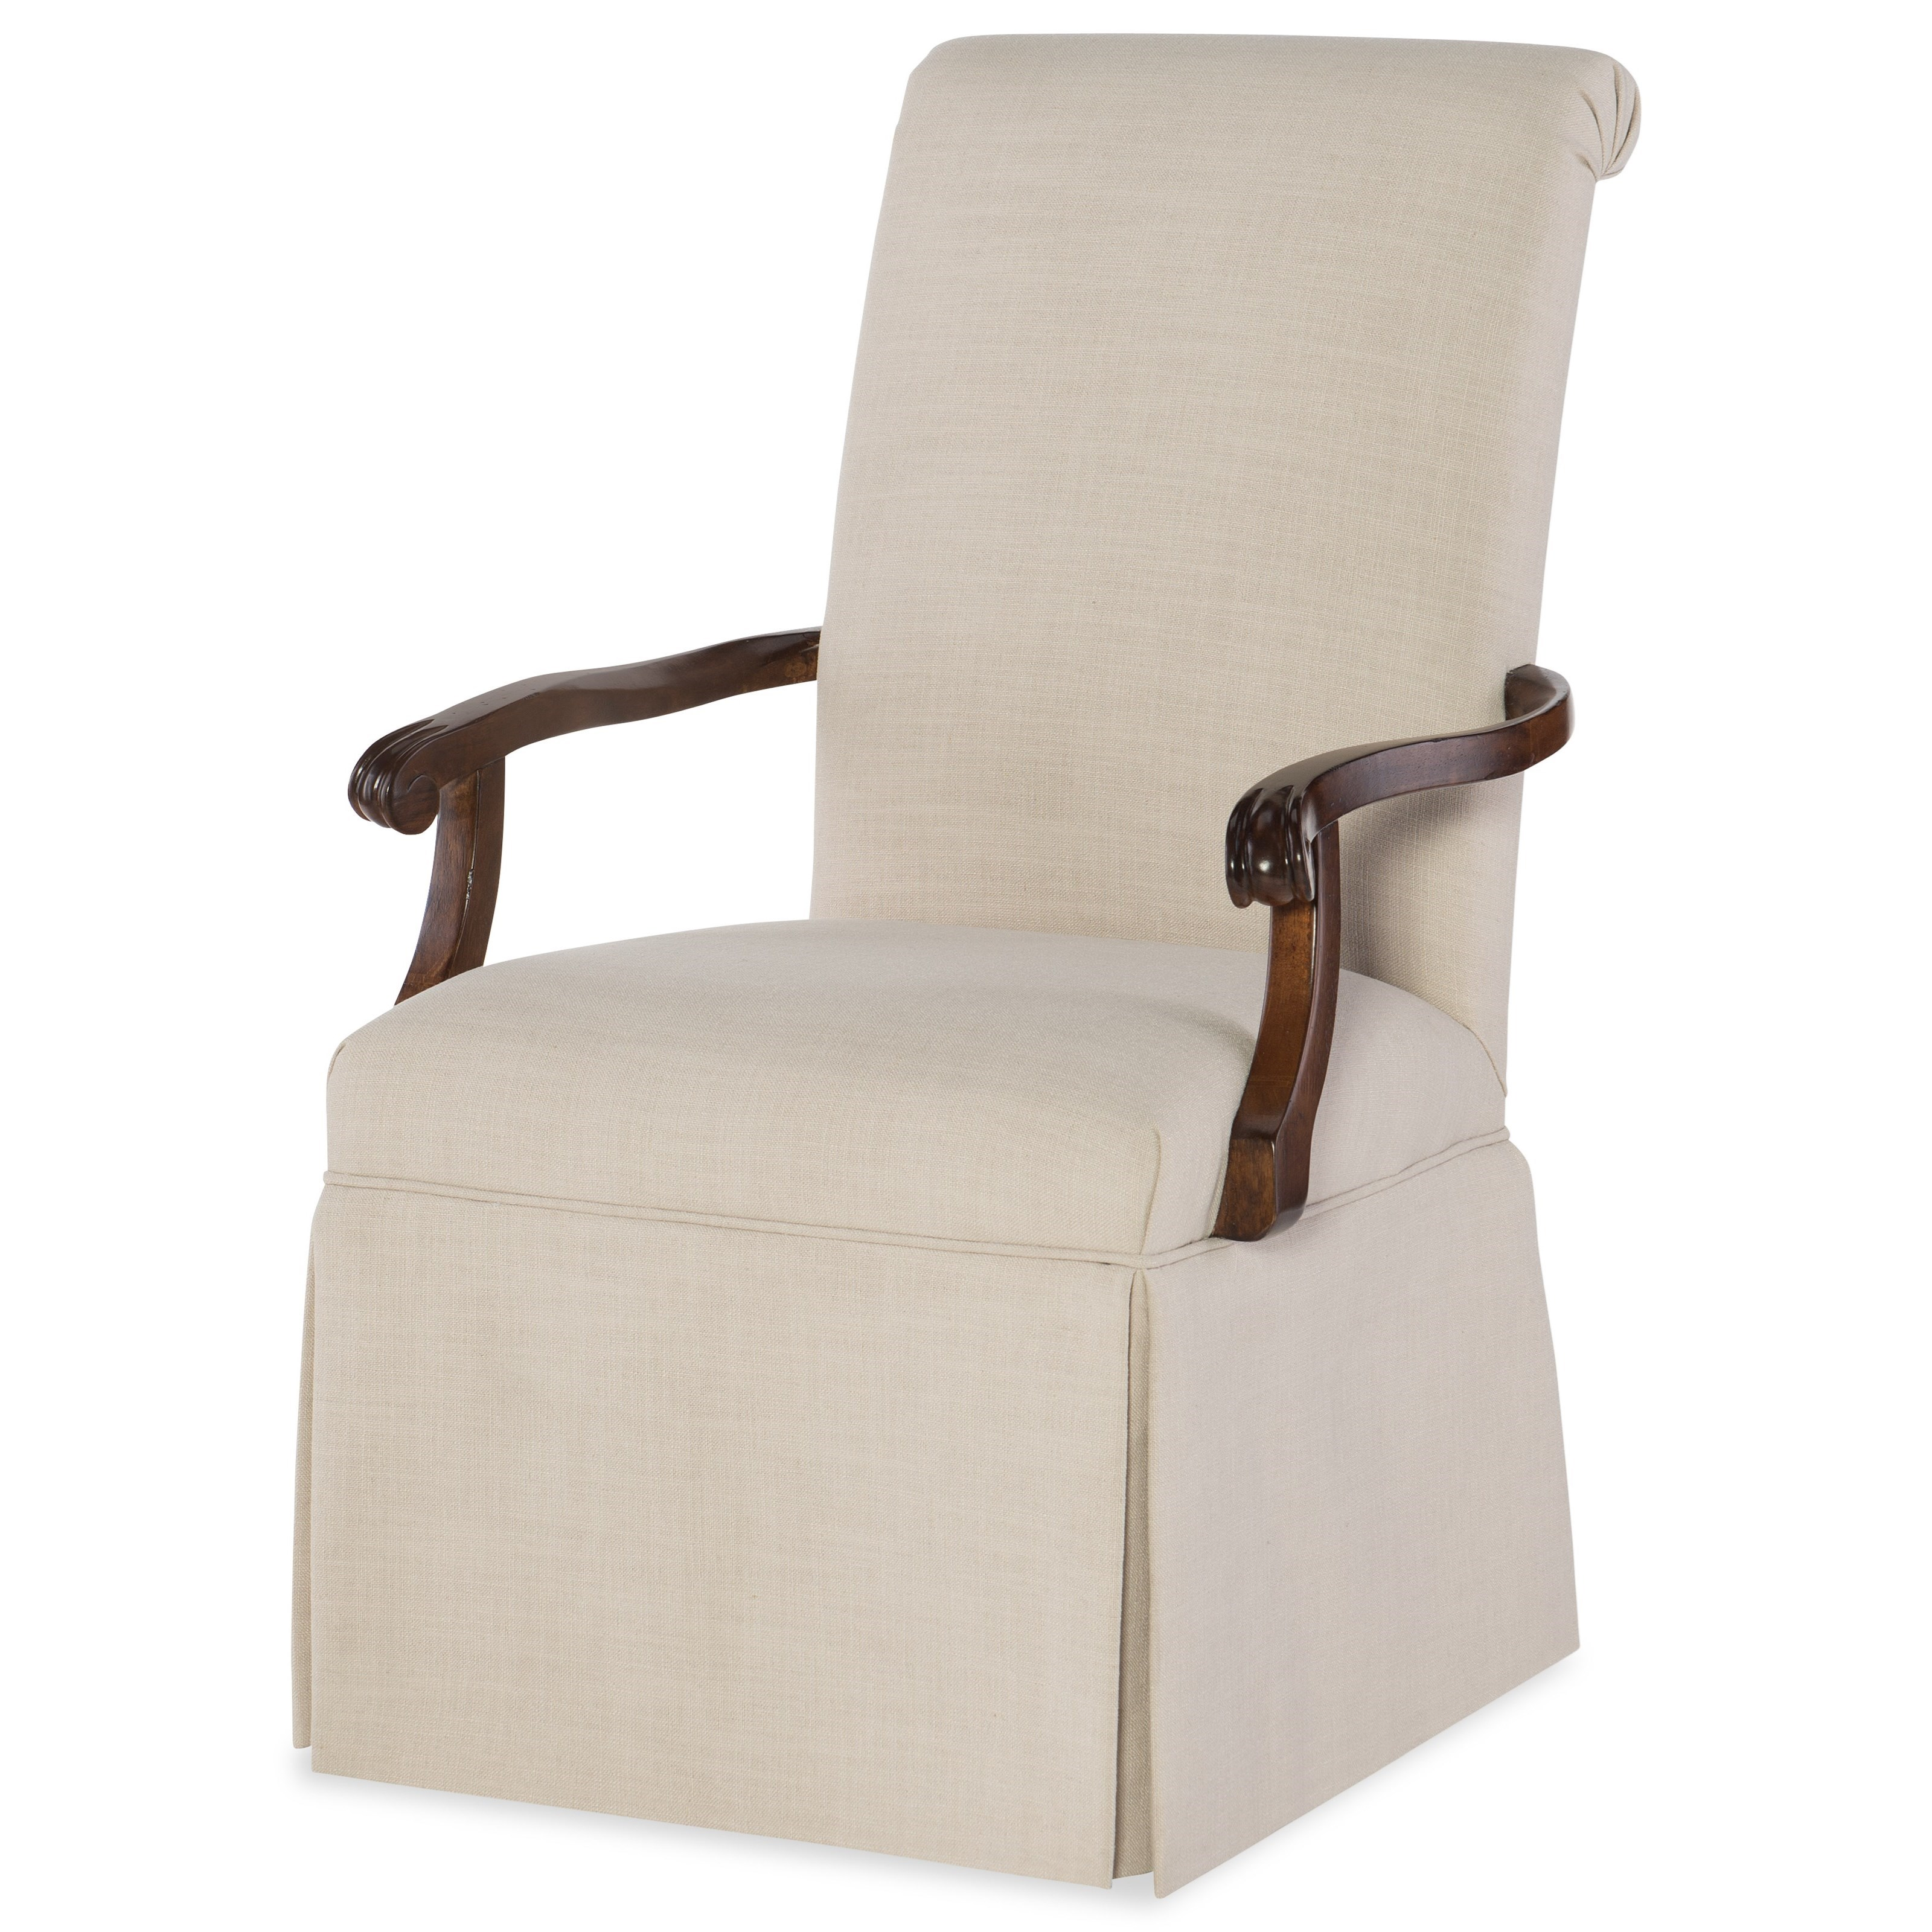 Rachael Ray Home by Legacy Classic Upstate Host Arm Chair - Item Number: 6040-451 KD